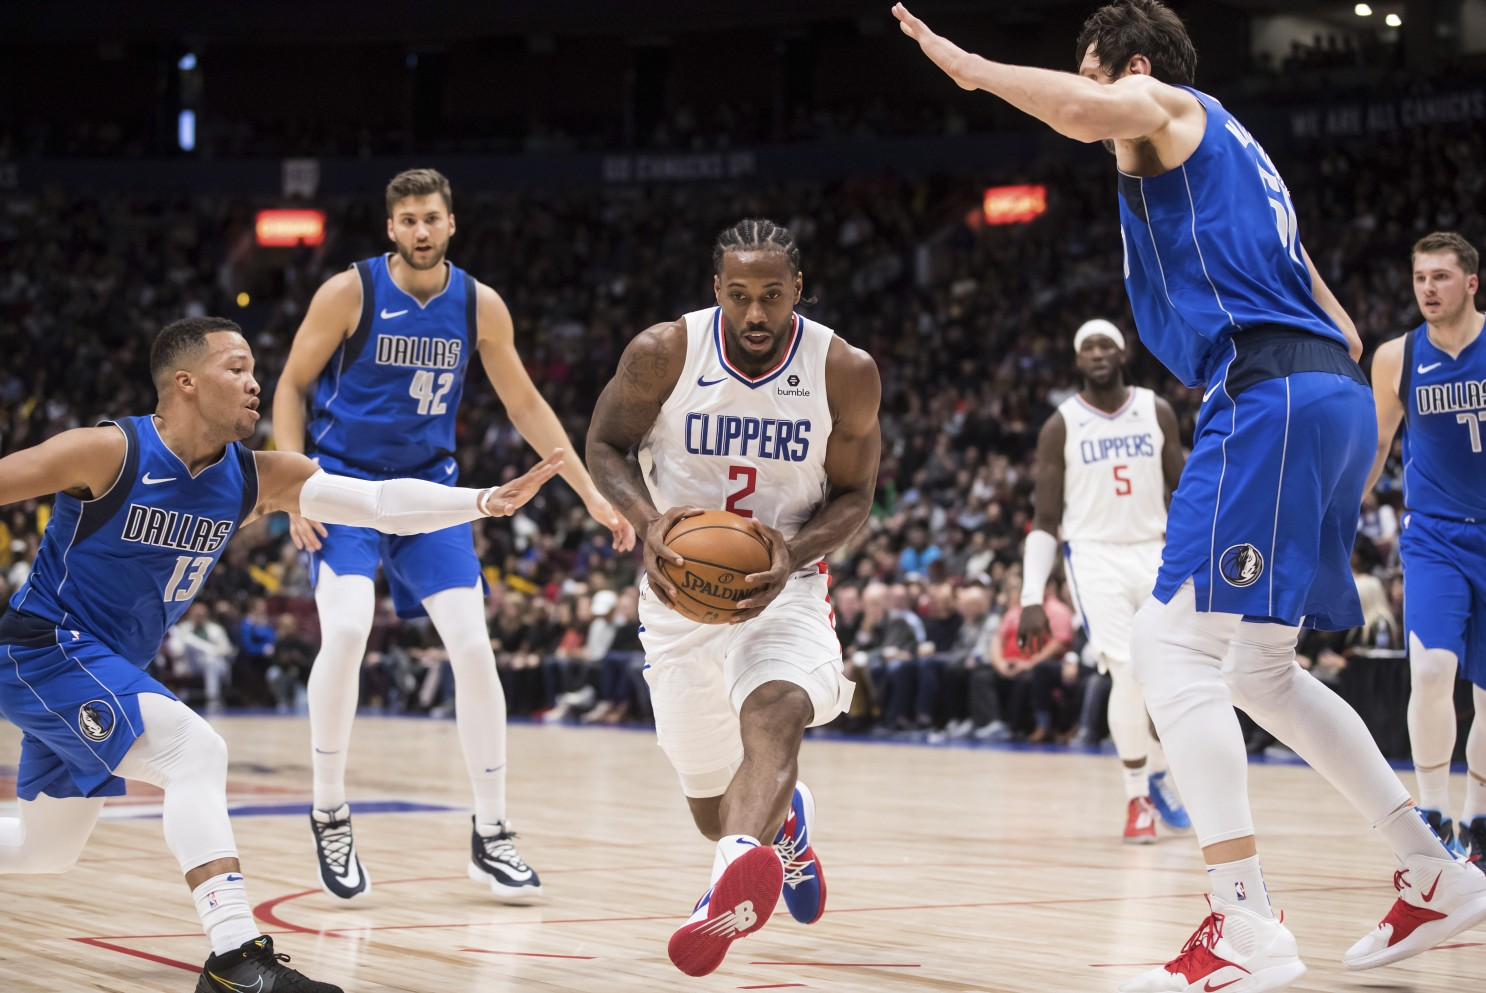 Los Angeles Clippers - Dallas Mavericks: 4-2